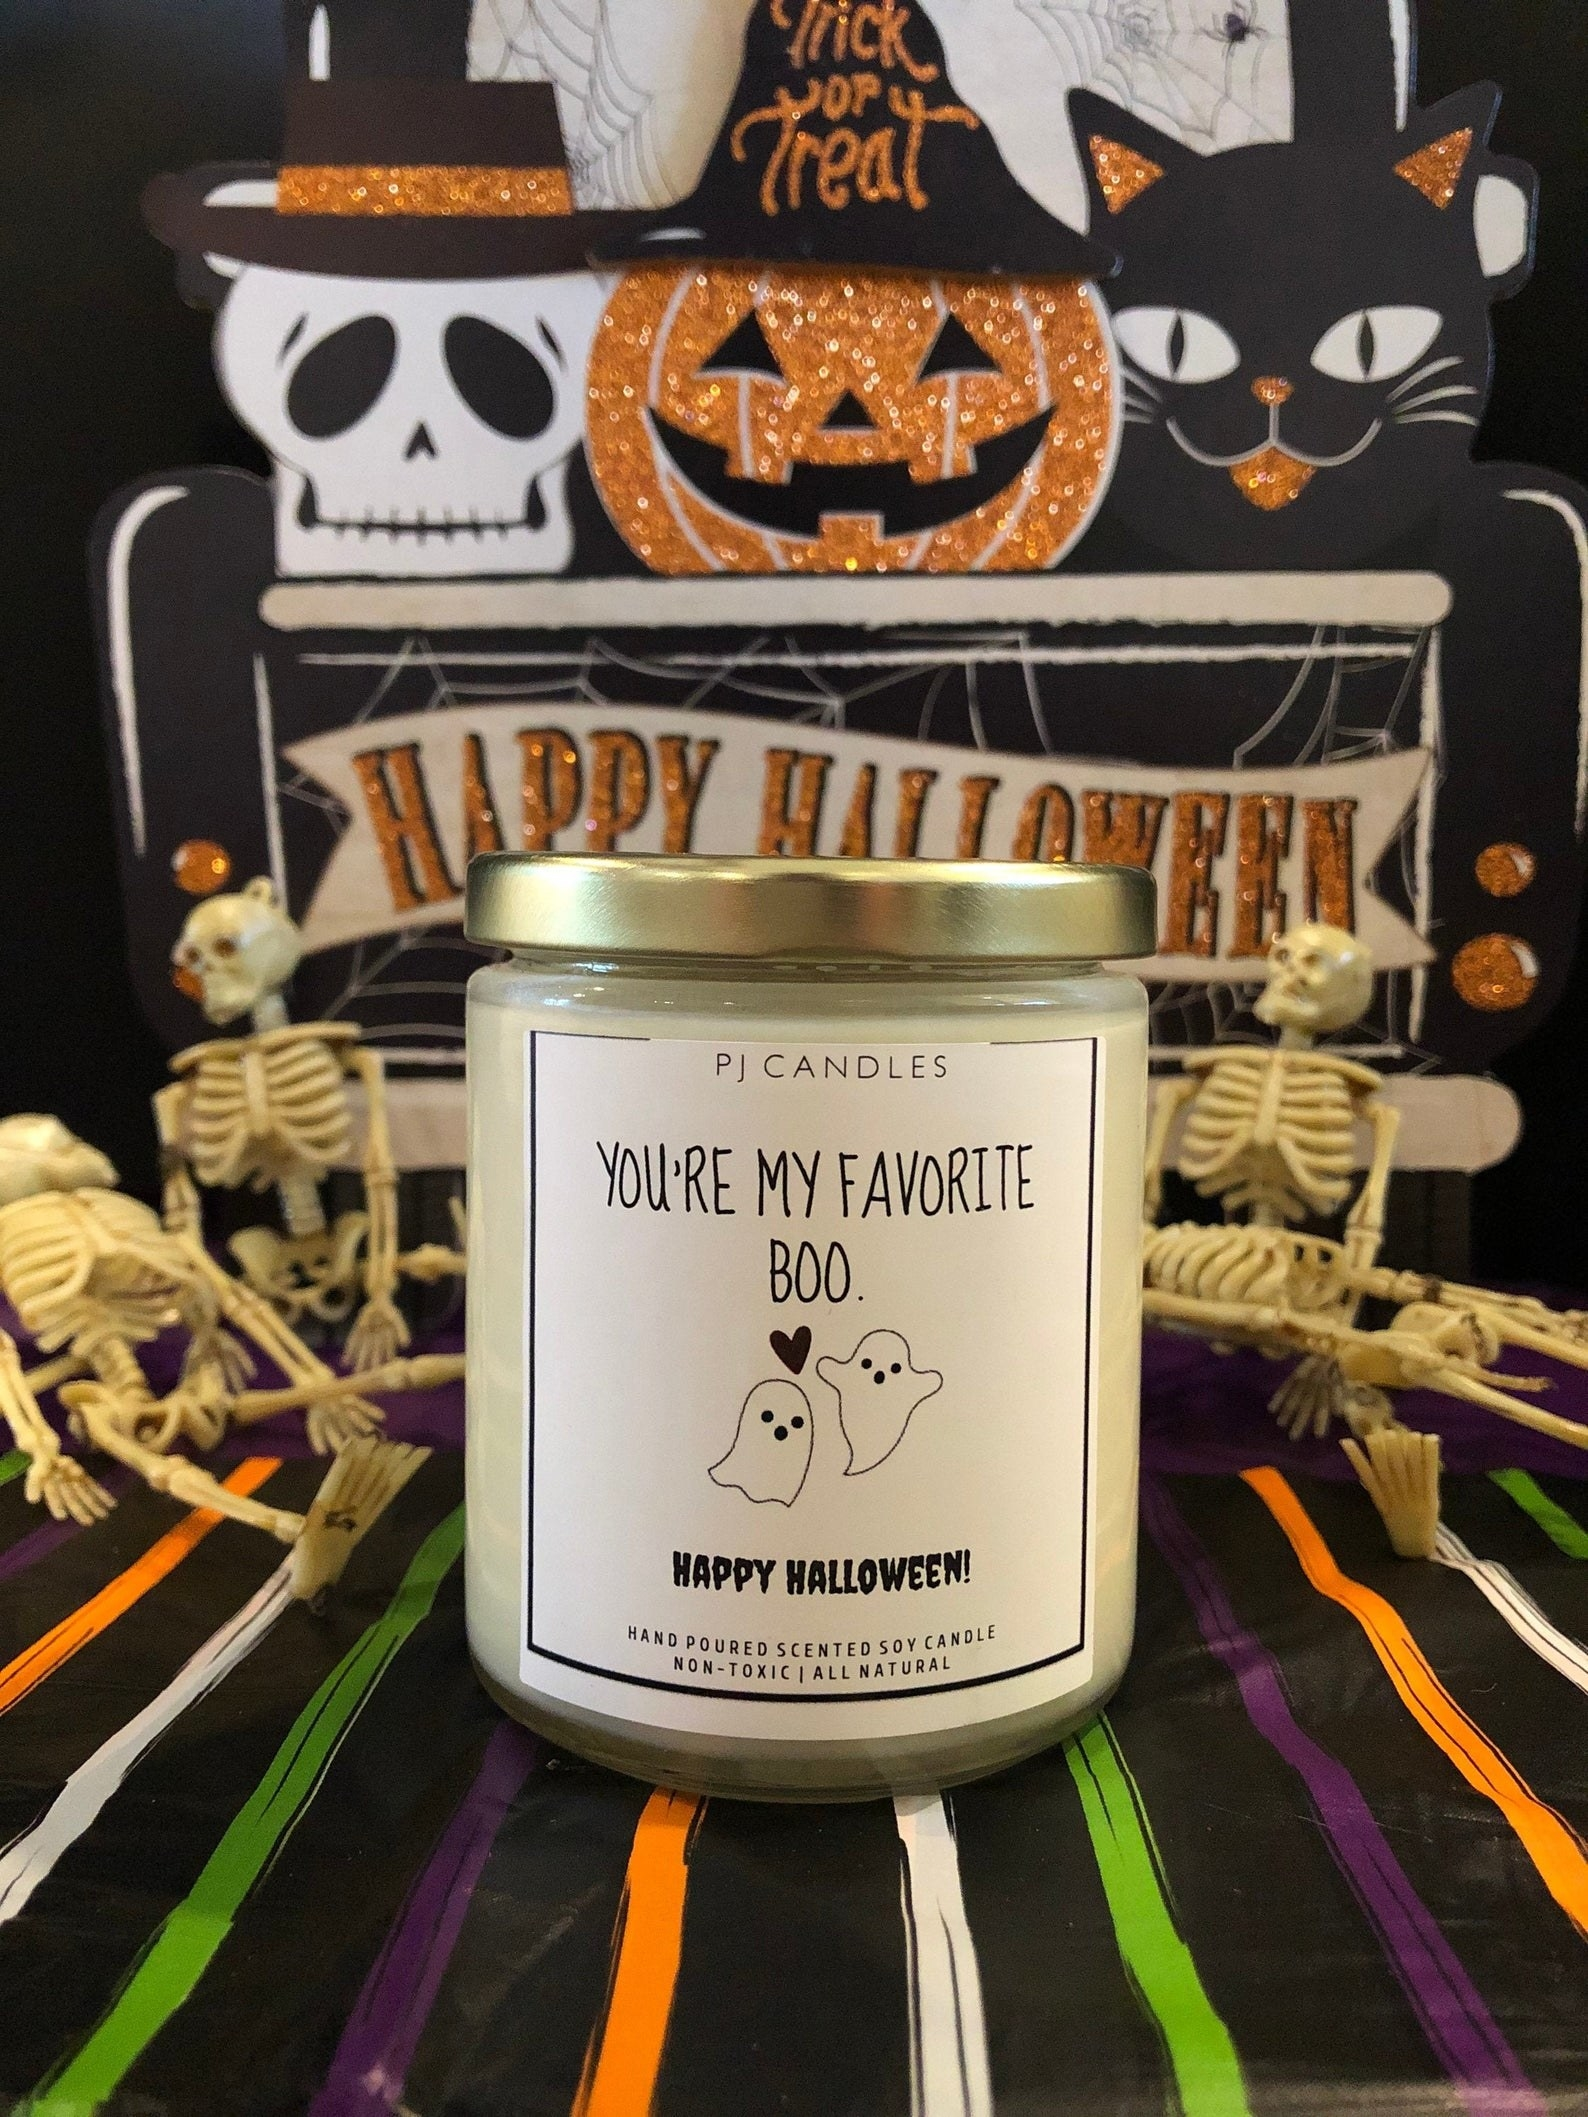 the white candle with ghost design